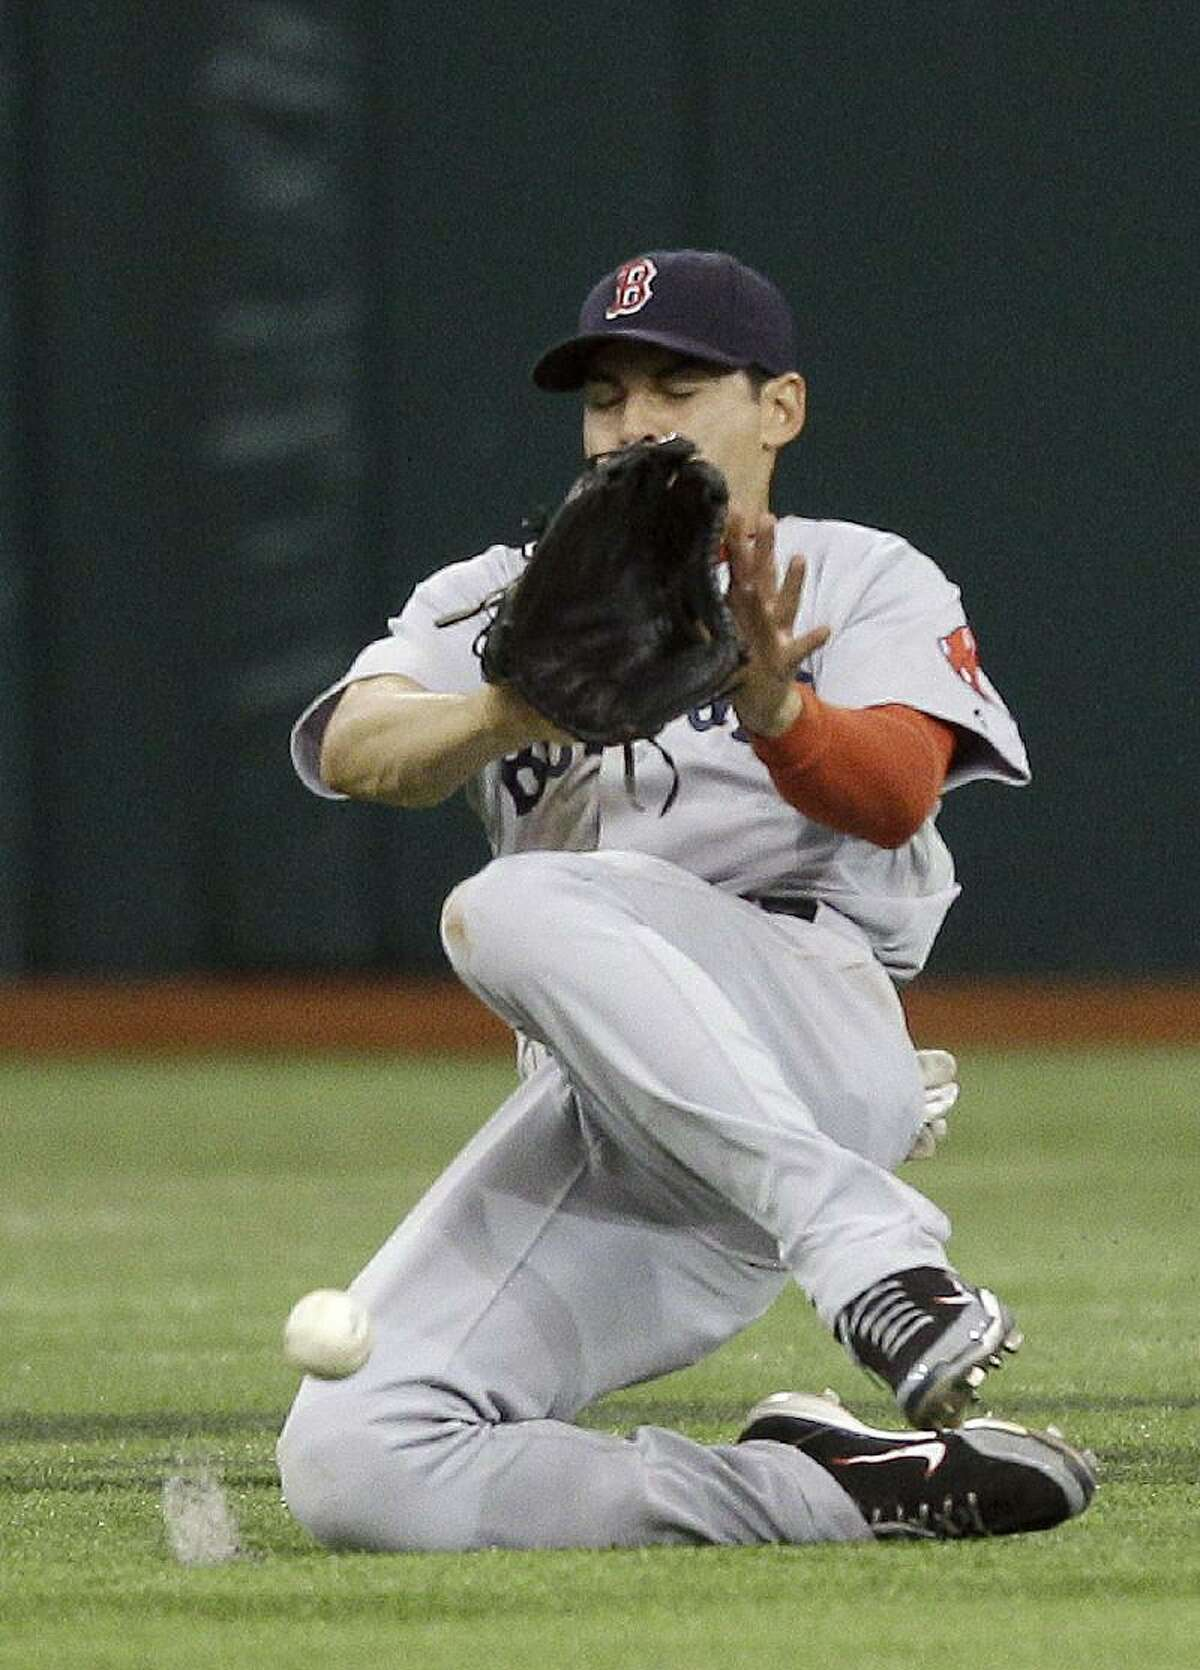 ASSOCIATED PRESS Boston Red Sox center fielder Jacoby Ellsbury slides but can't come up with an eighth-inning double by Tampa Bay'S Matt Joyce during Tuesday's game in St. Petersburg, Fla. Tampa Bay won 4-0.